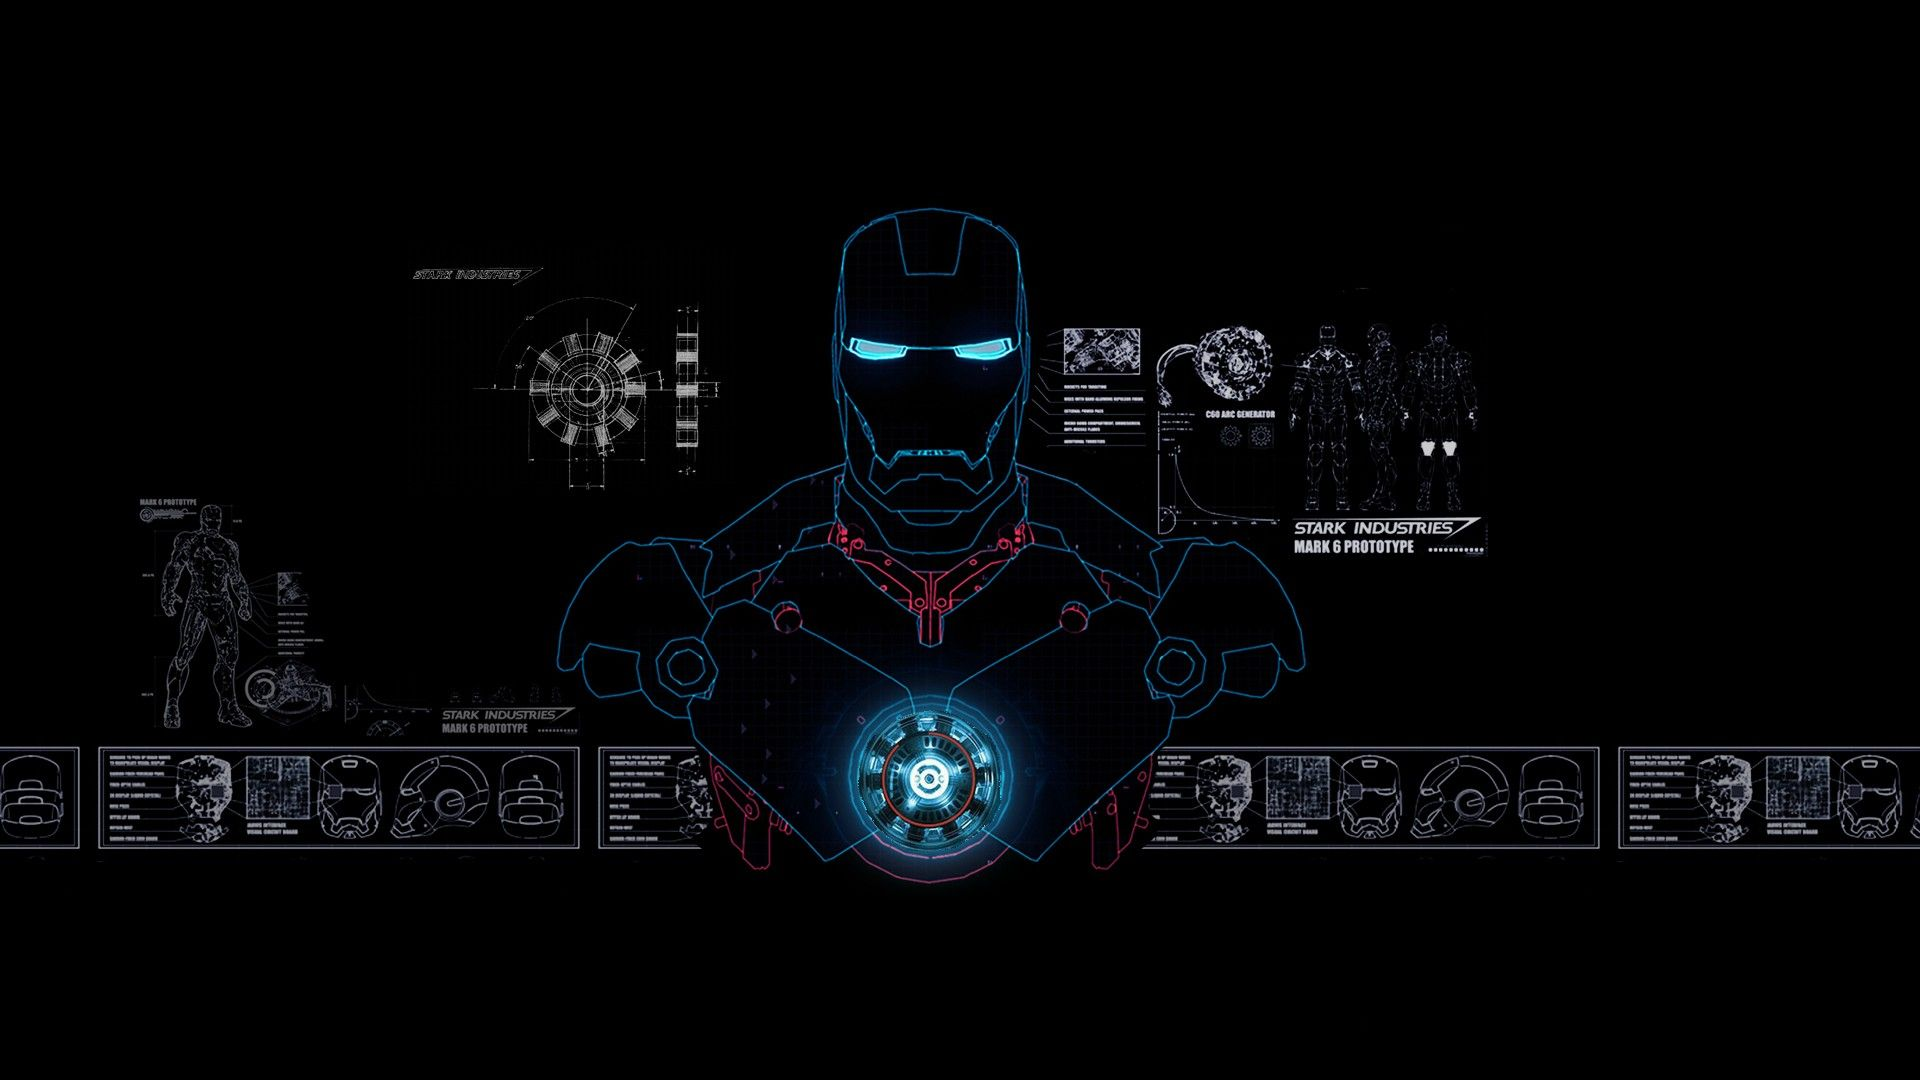 10 Of Marvel Images Memes And Tweets With Images Dc Comics Wallpaper Iron Man Wallpaper Marvel Images